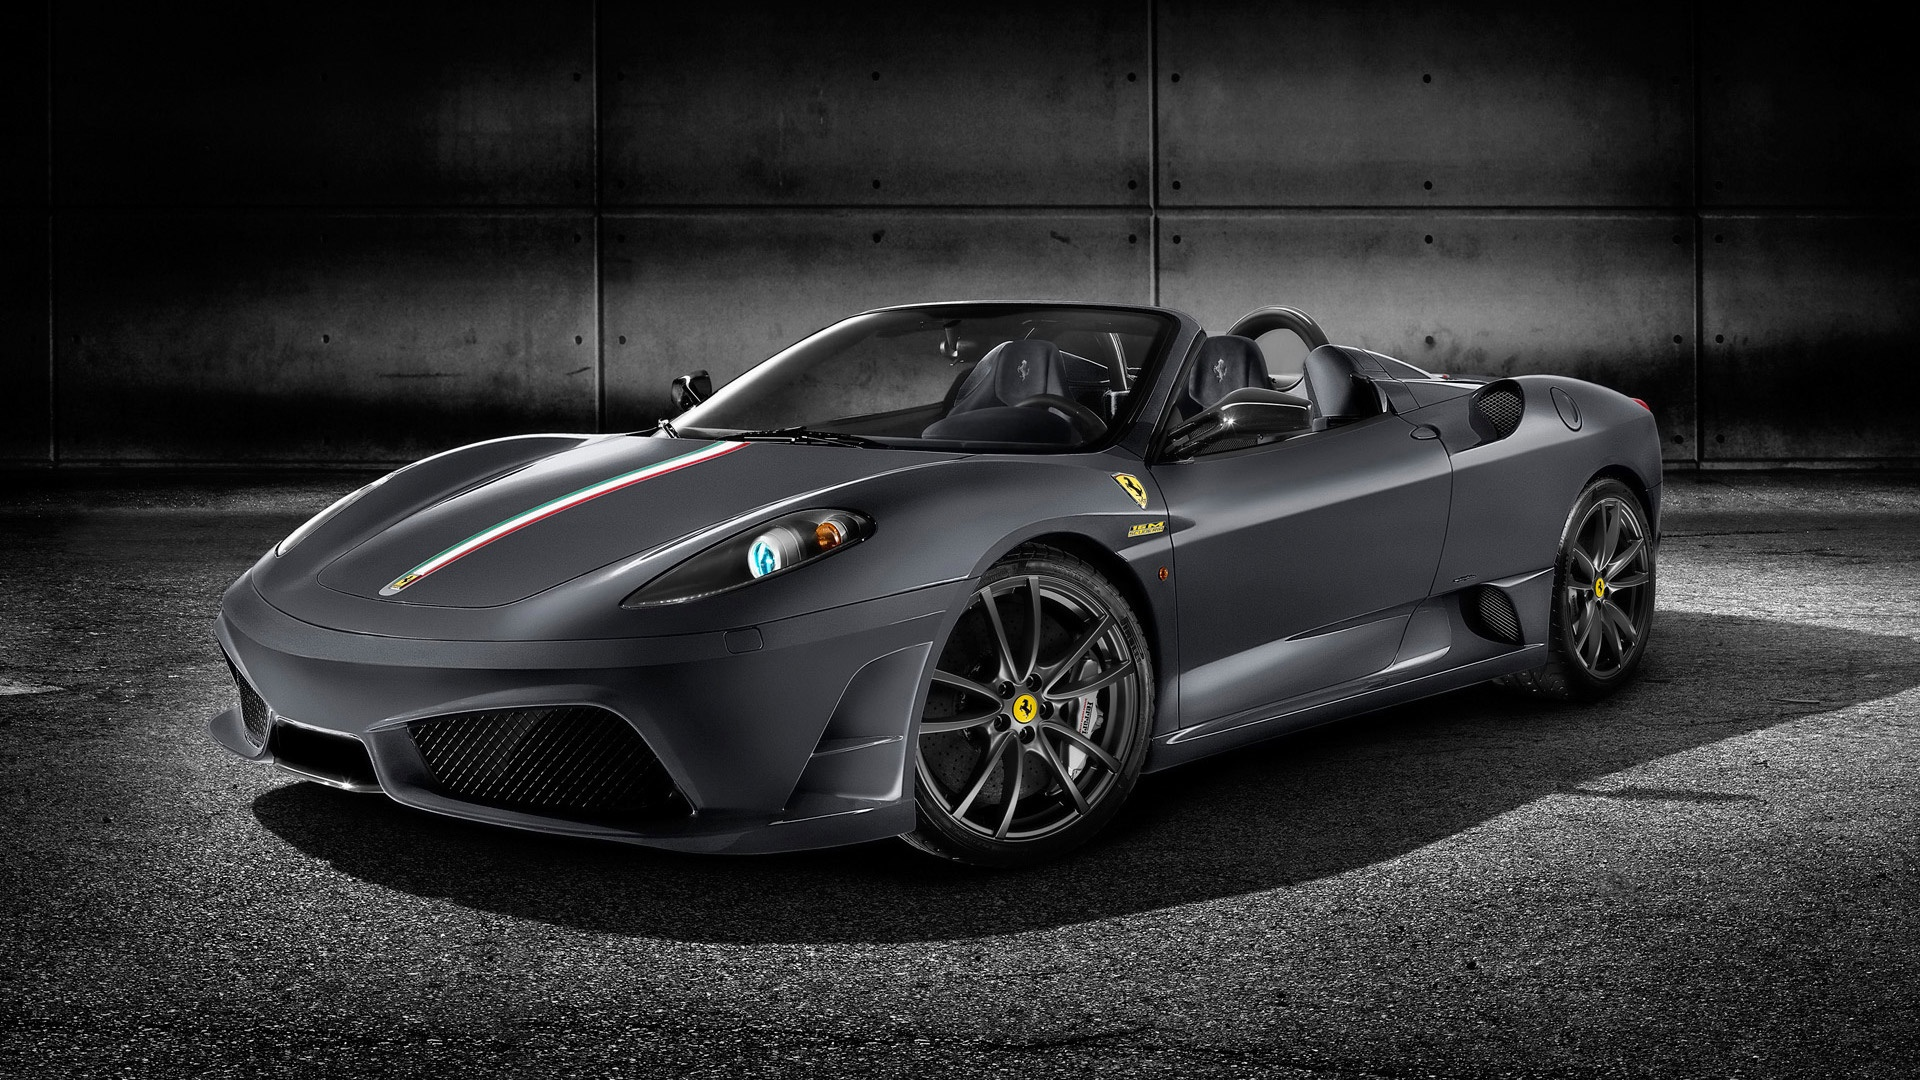 Ferrari Scuderia Spider Hdtv 1080p Wallpapers In Jpg Format